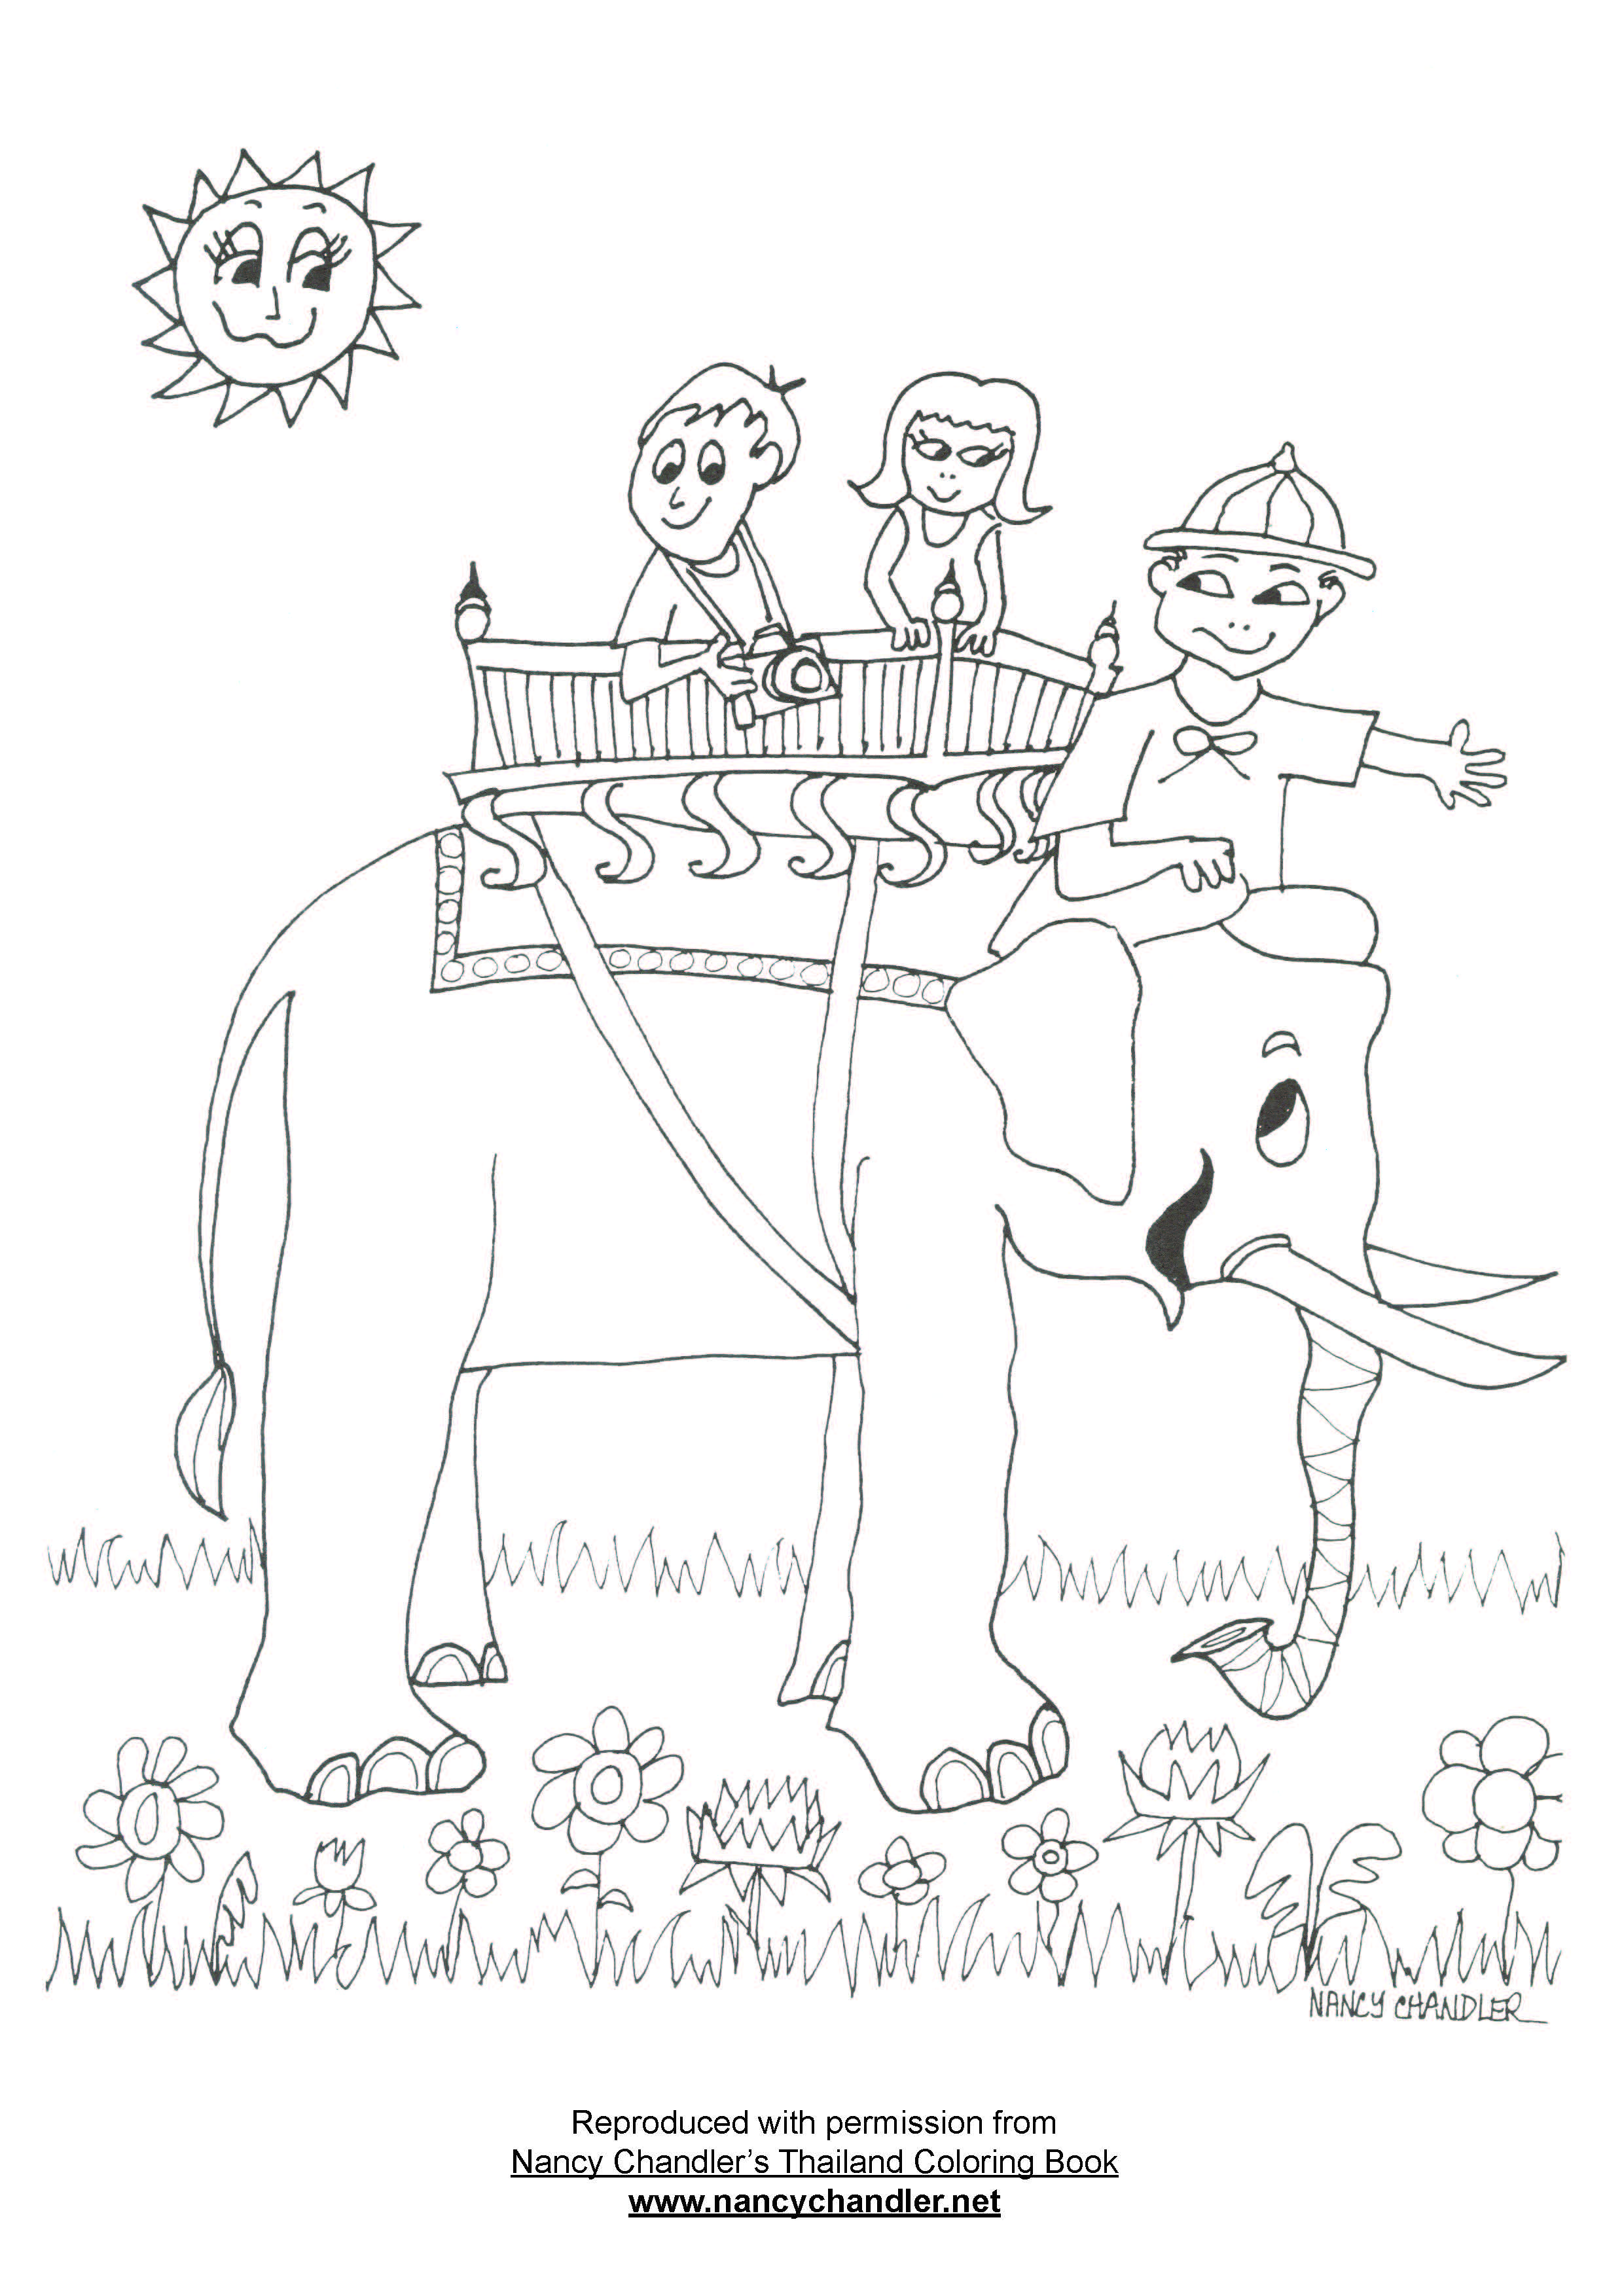 Awareness Of Harsh Conditions Affecting Elephants In Camps Came To The Fore While This Image Remains One Our Most Popular Coloring Book Pages